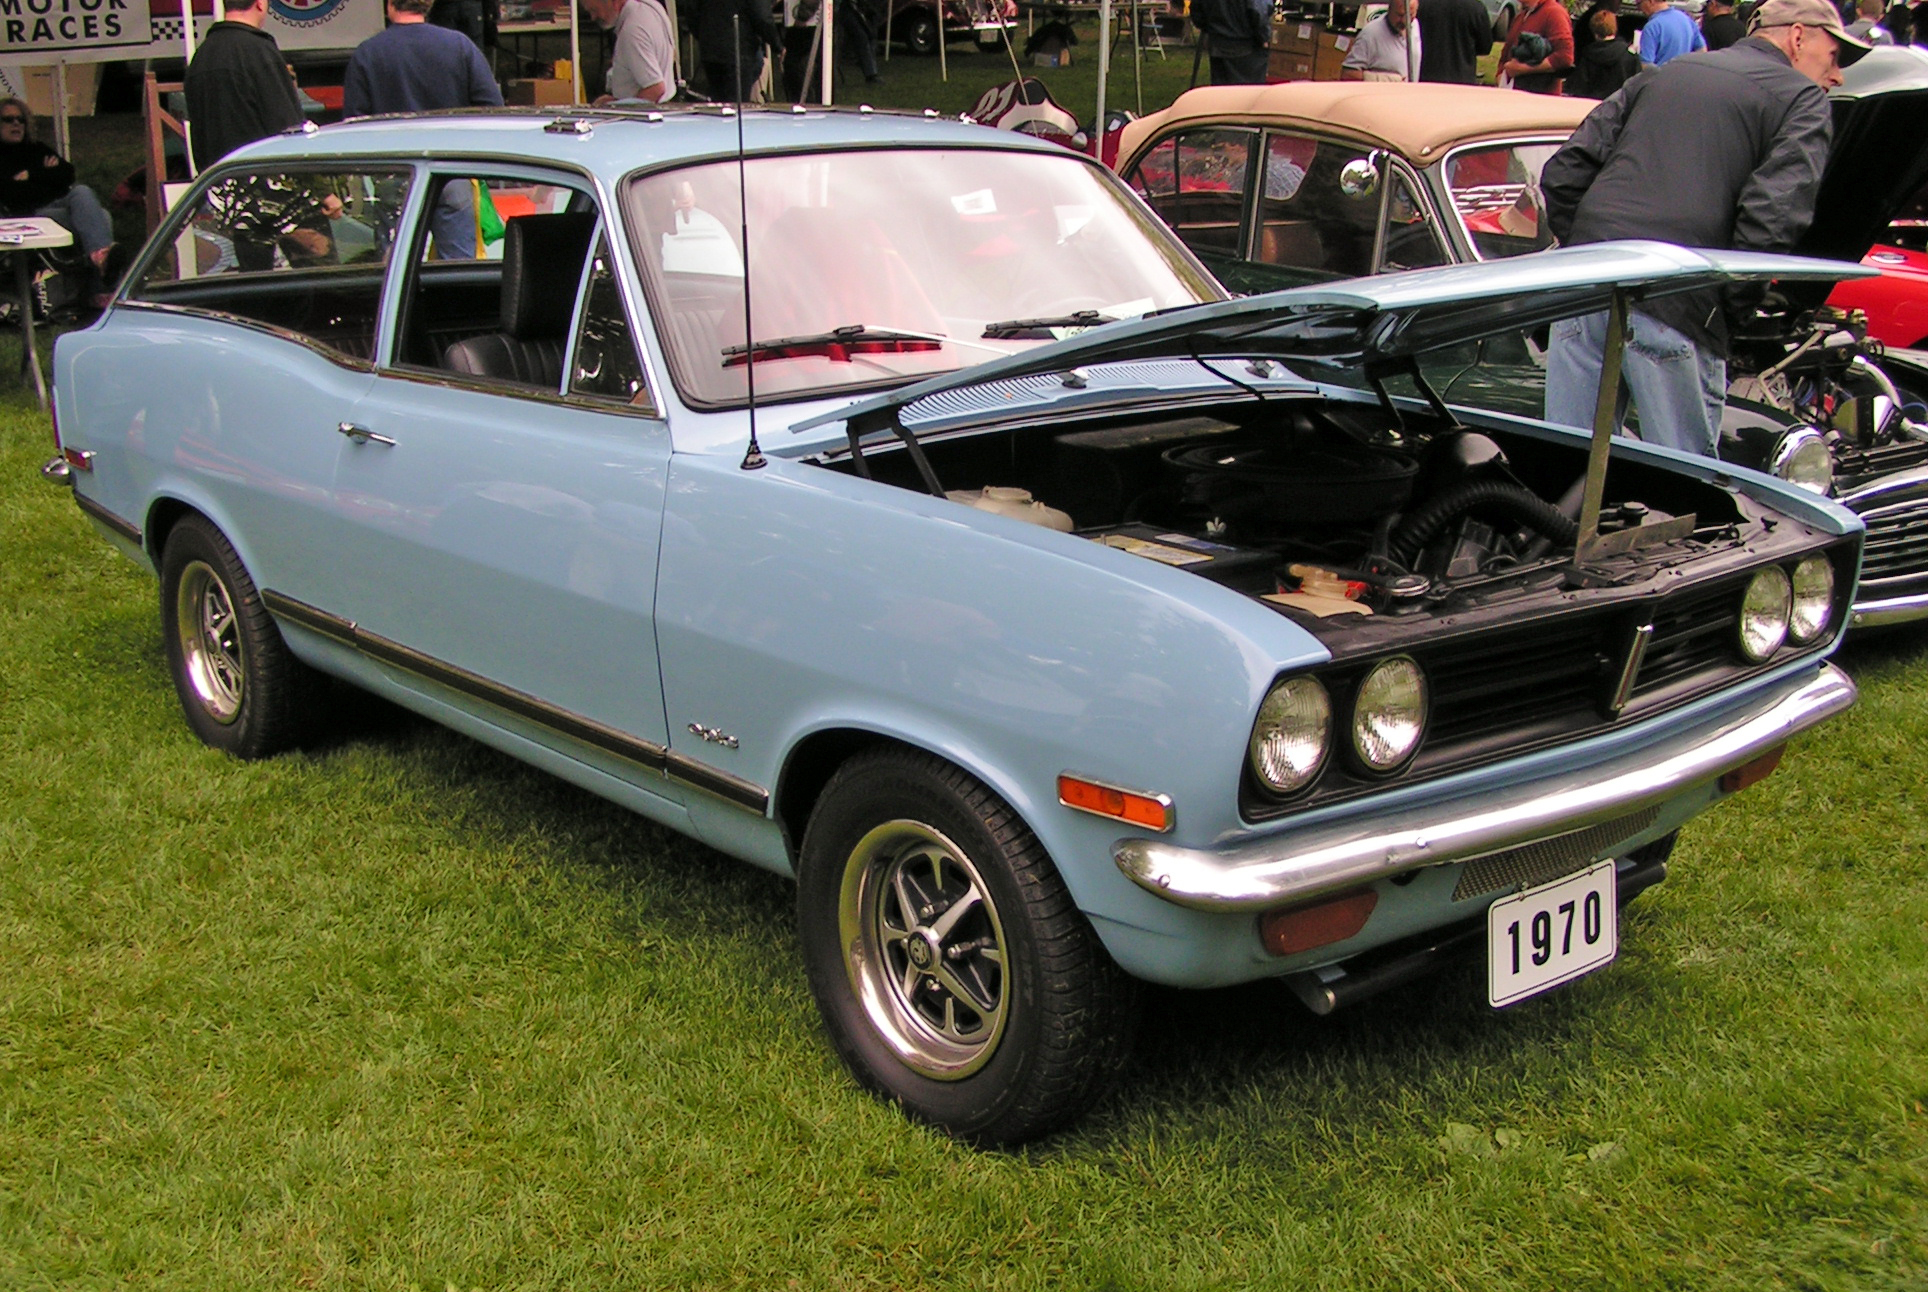 1000  images about Vauxhall Cars on Pinterest | Mk1, Cars and Sedans